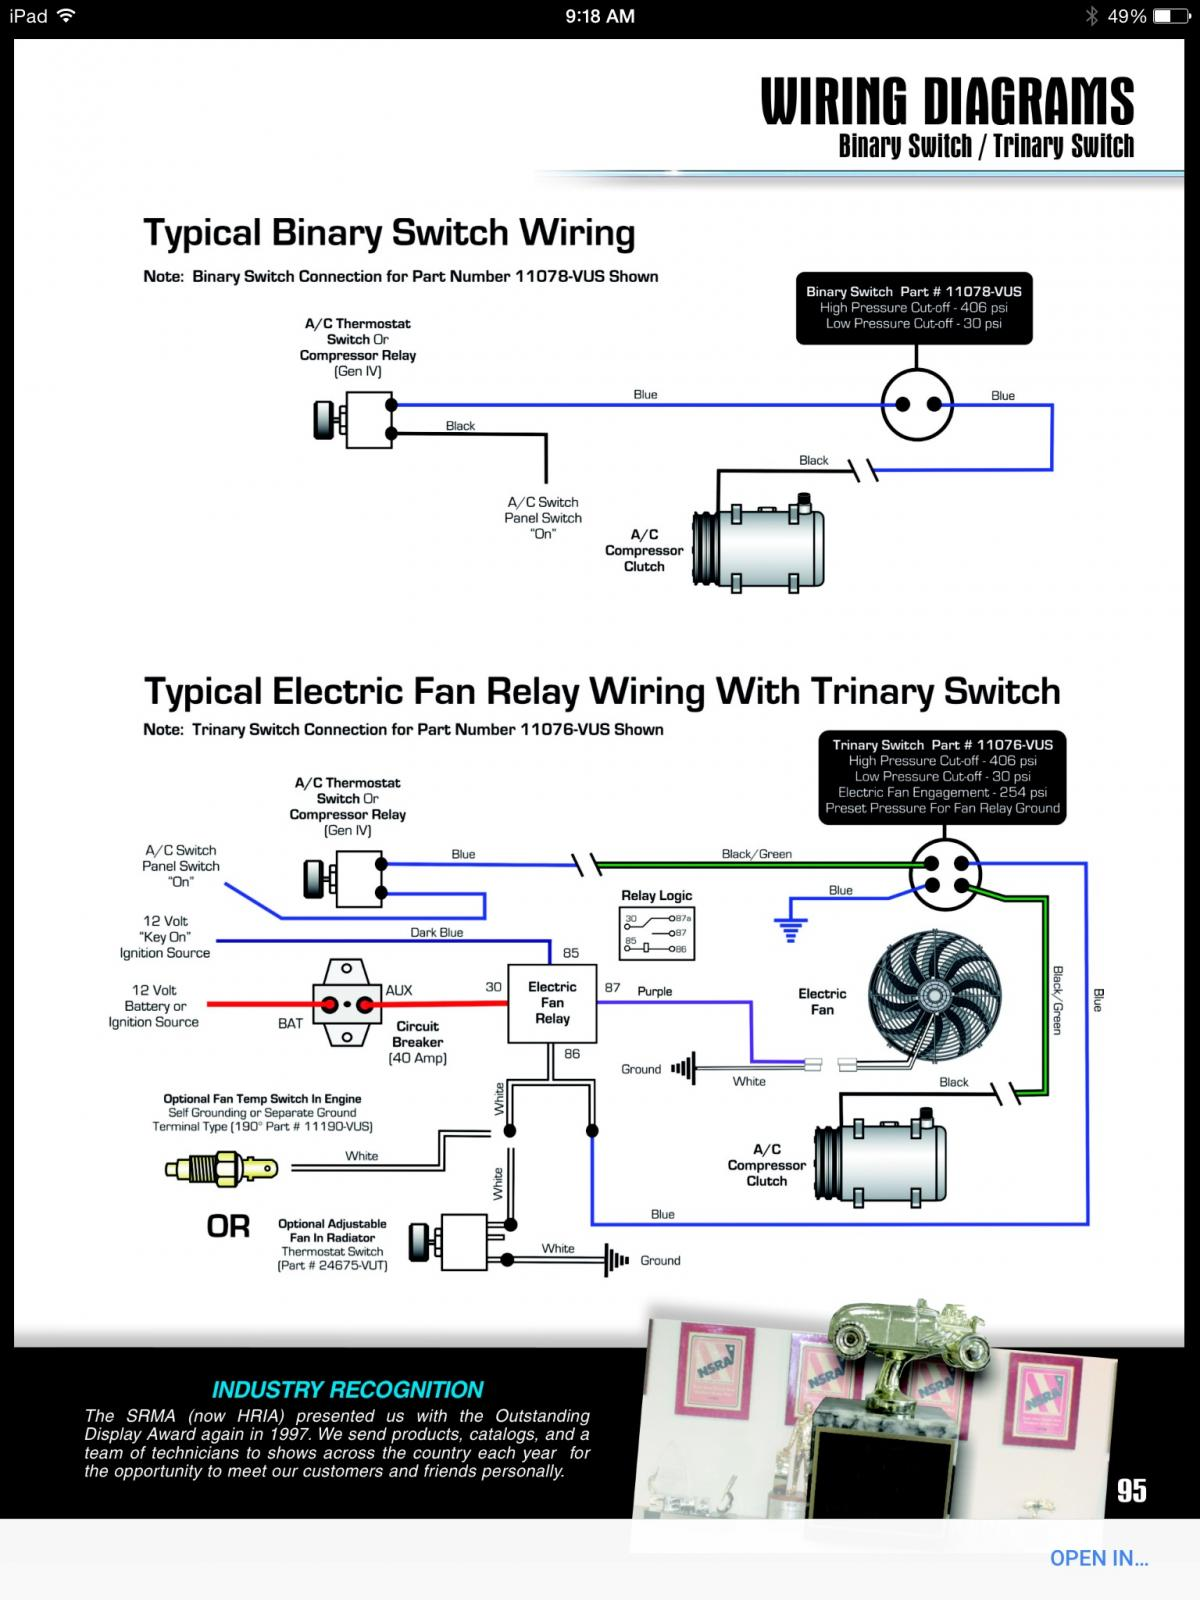 2007 Gti Air Conditioning Wiring Diagram Library Truck In Image May Have Been Reduced Size Click To View Fullscreen